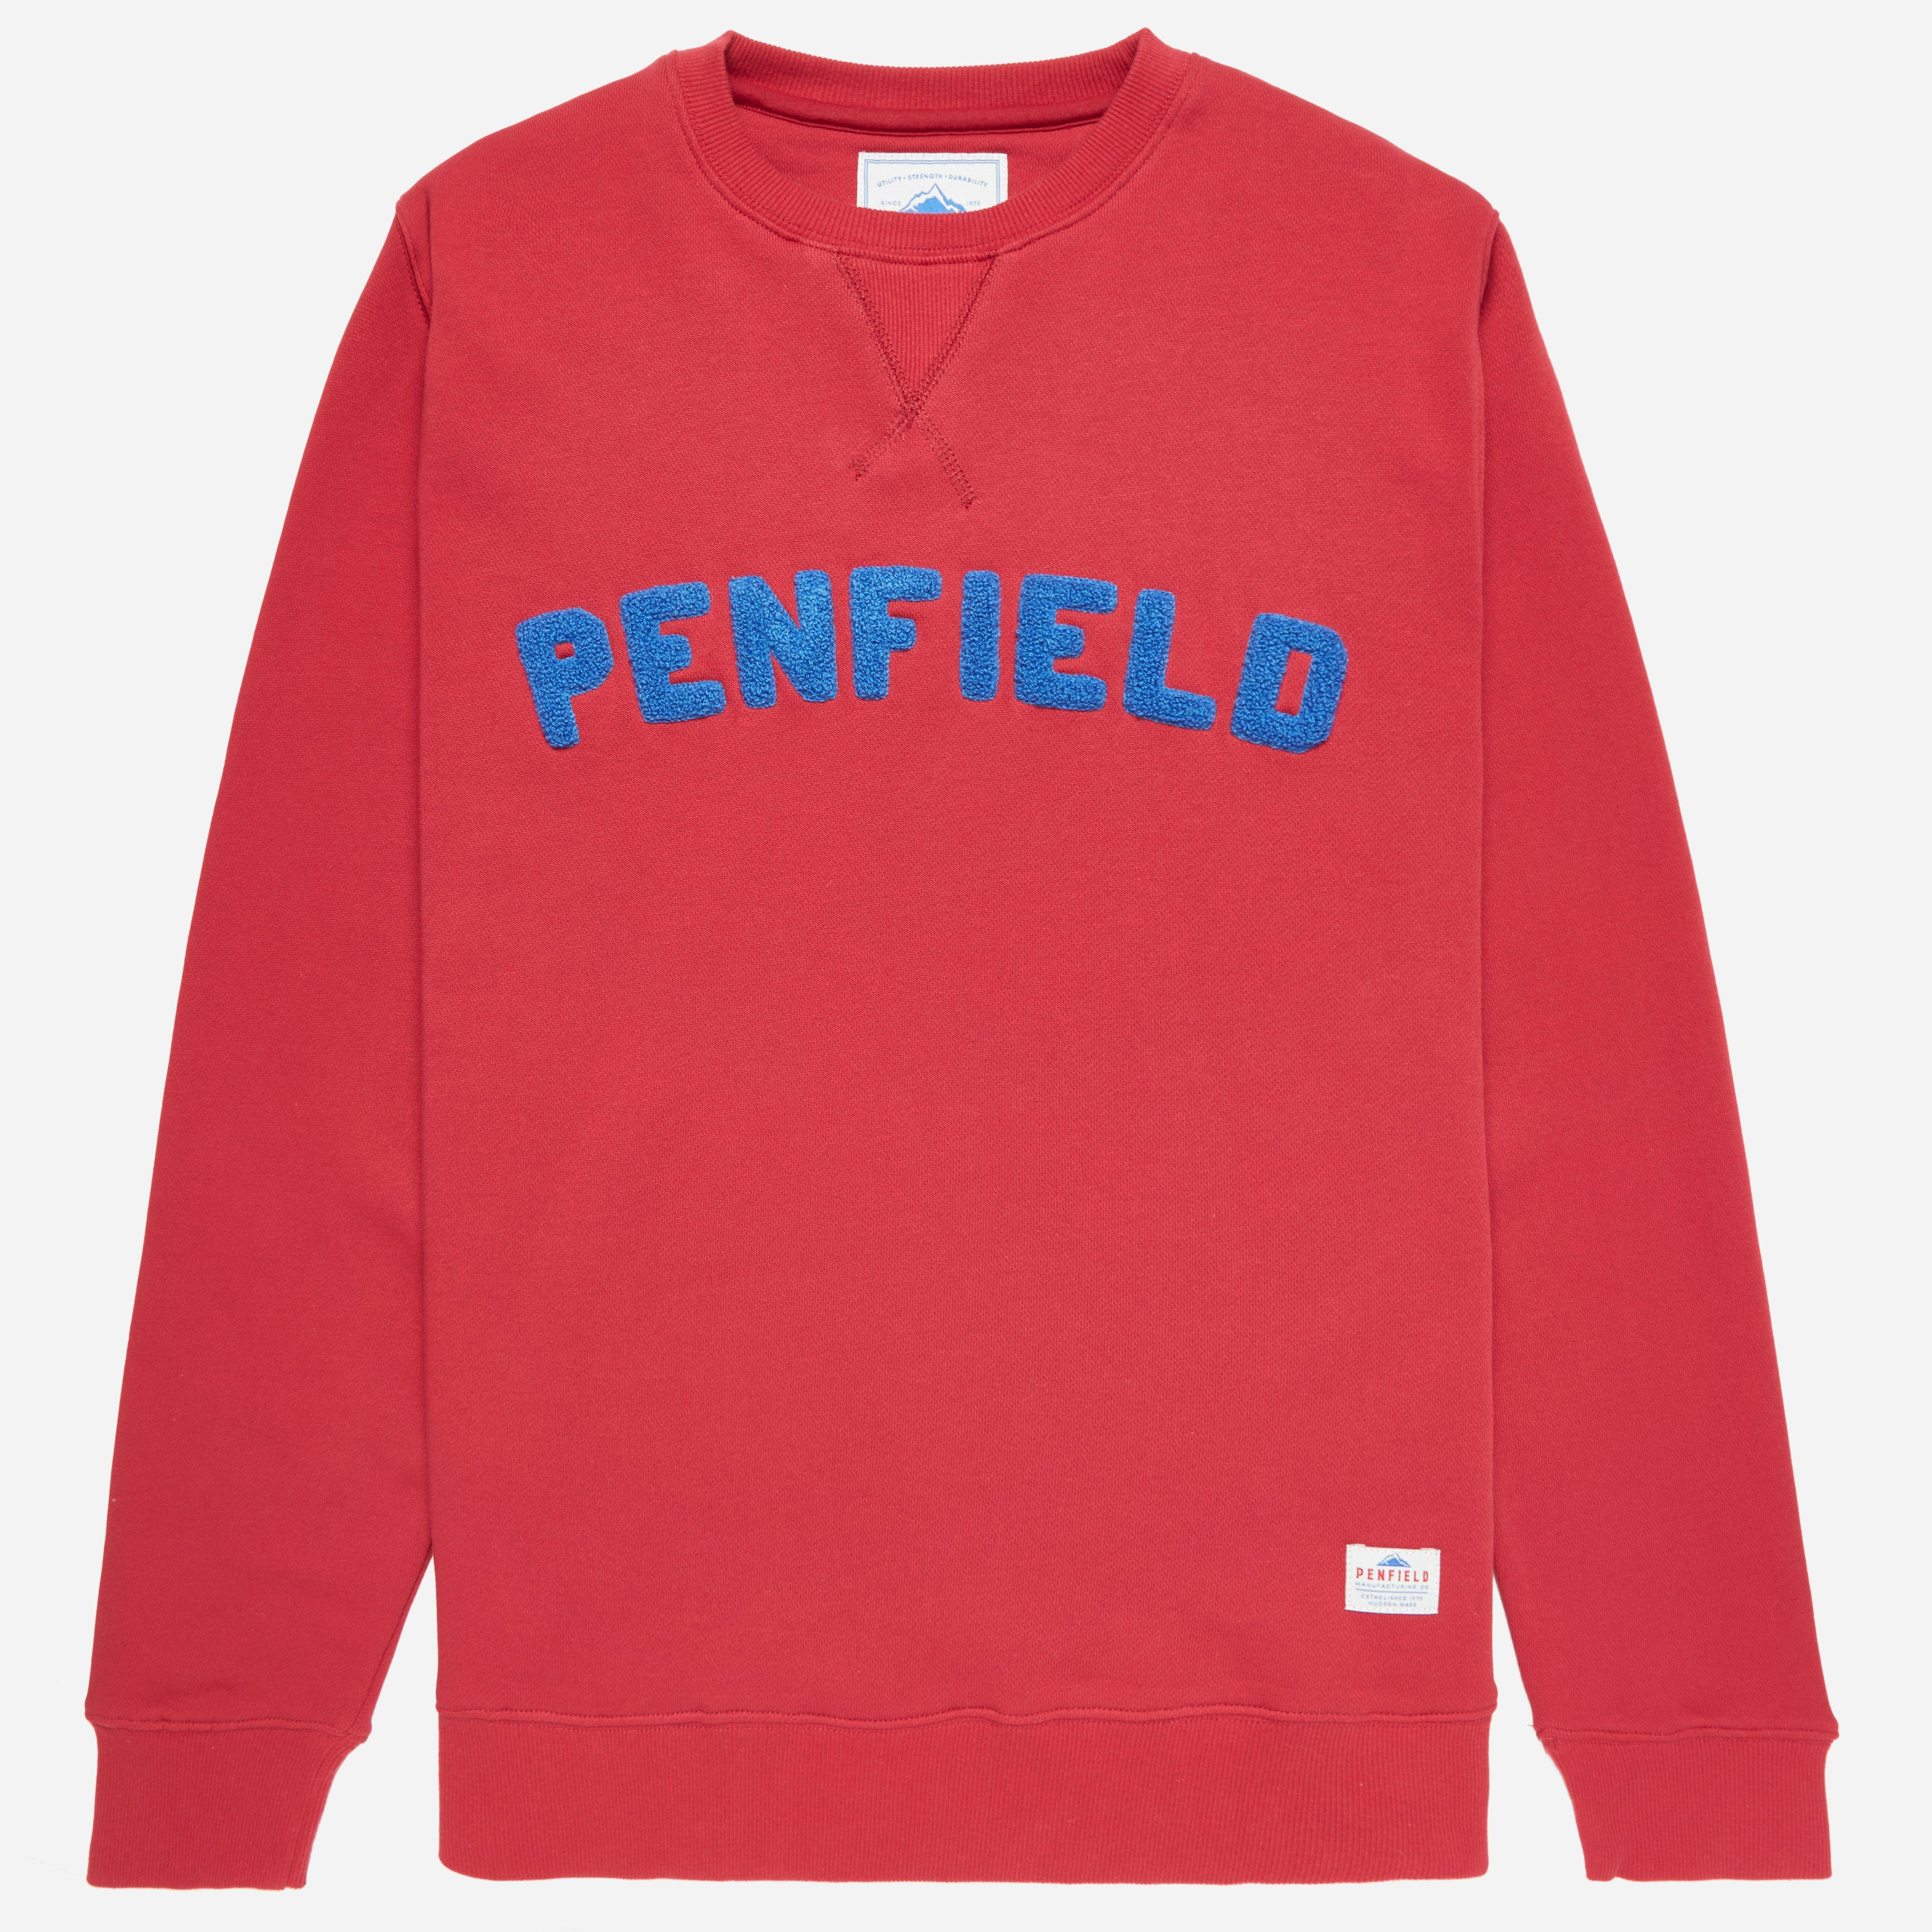 Penfield Brookport Sweatshirt